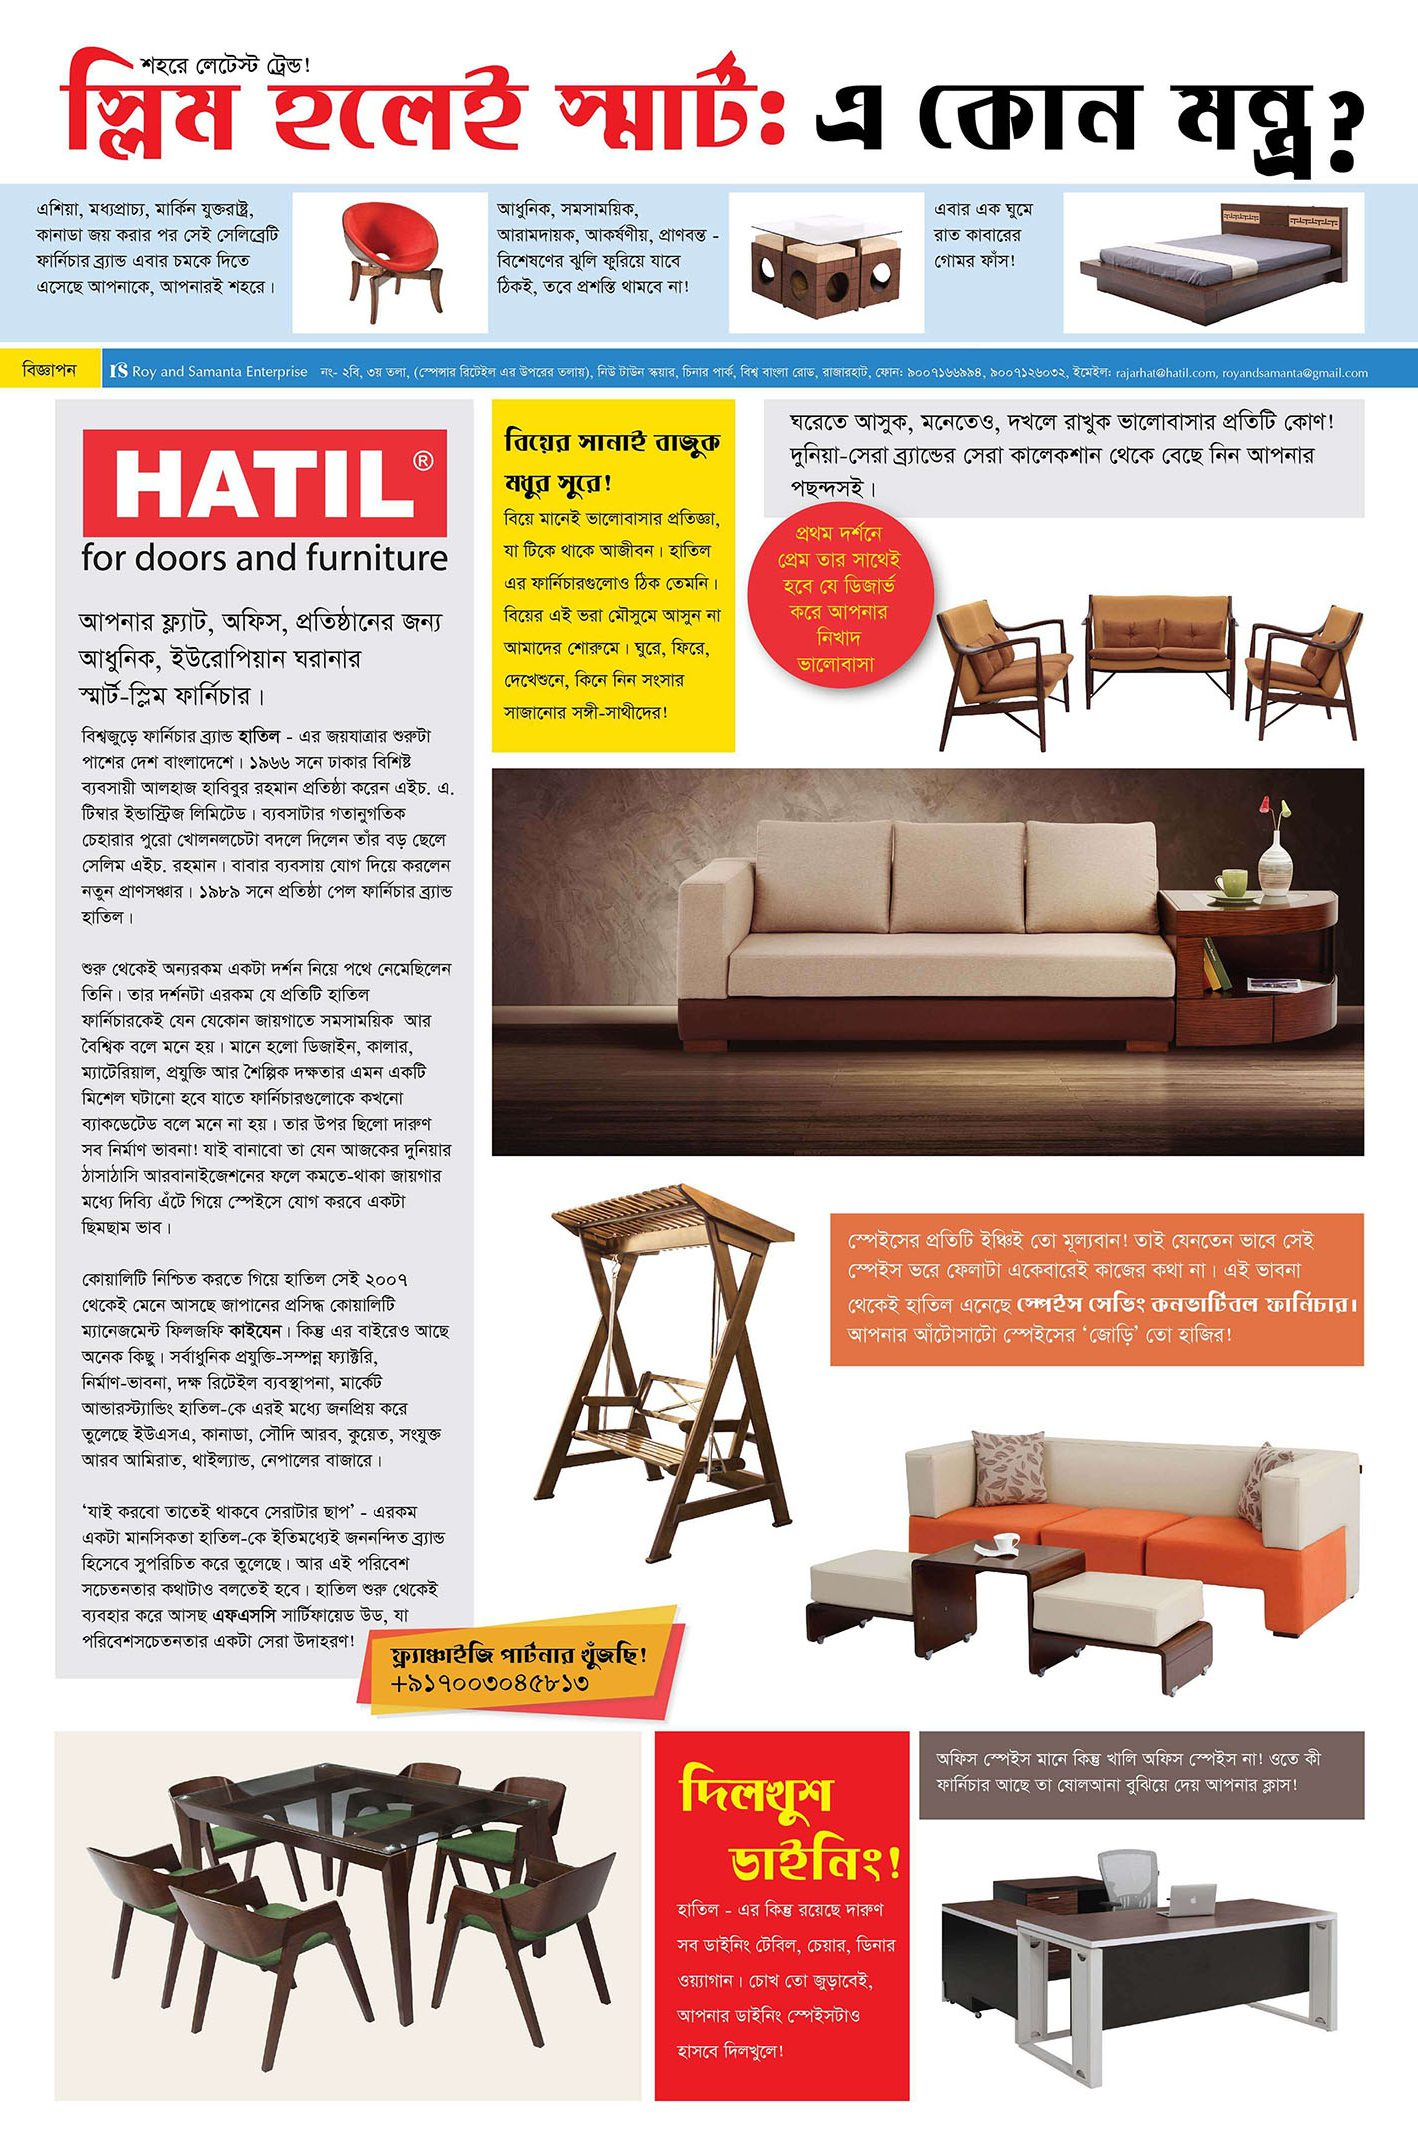 NEWSPAPER ADVERTORIAL - WEST BENGAL, INDIA